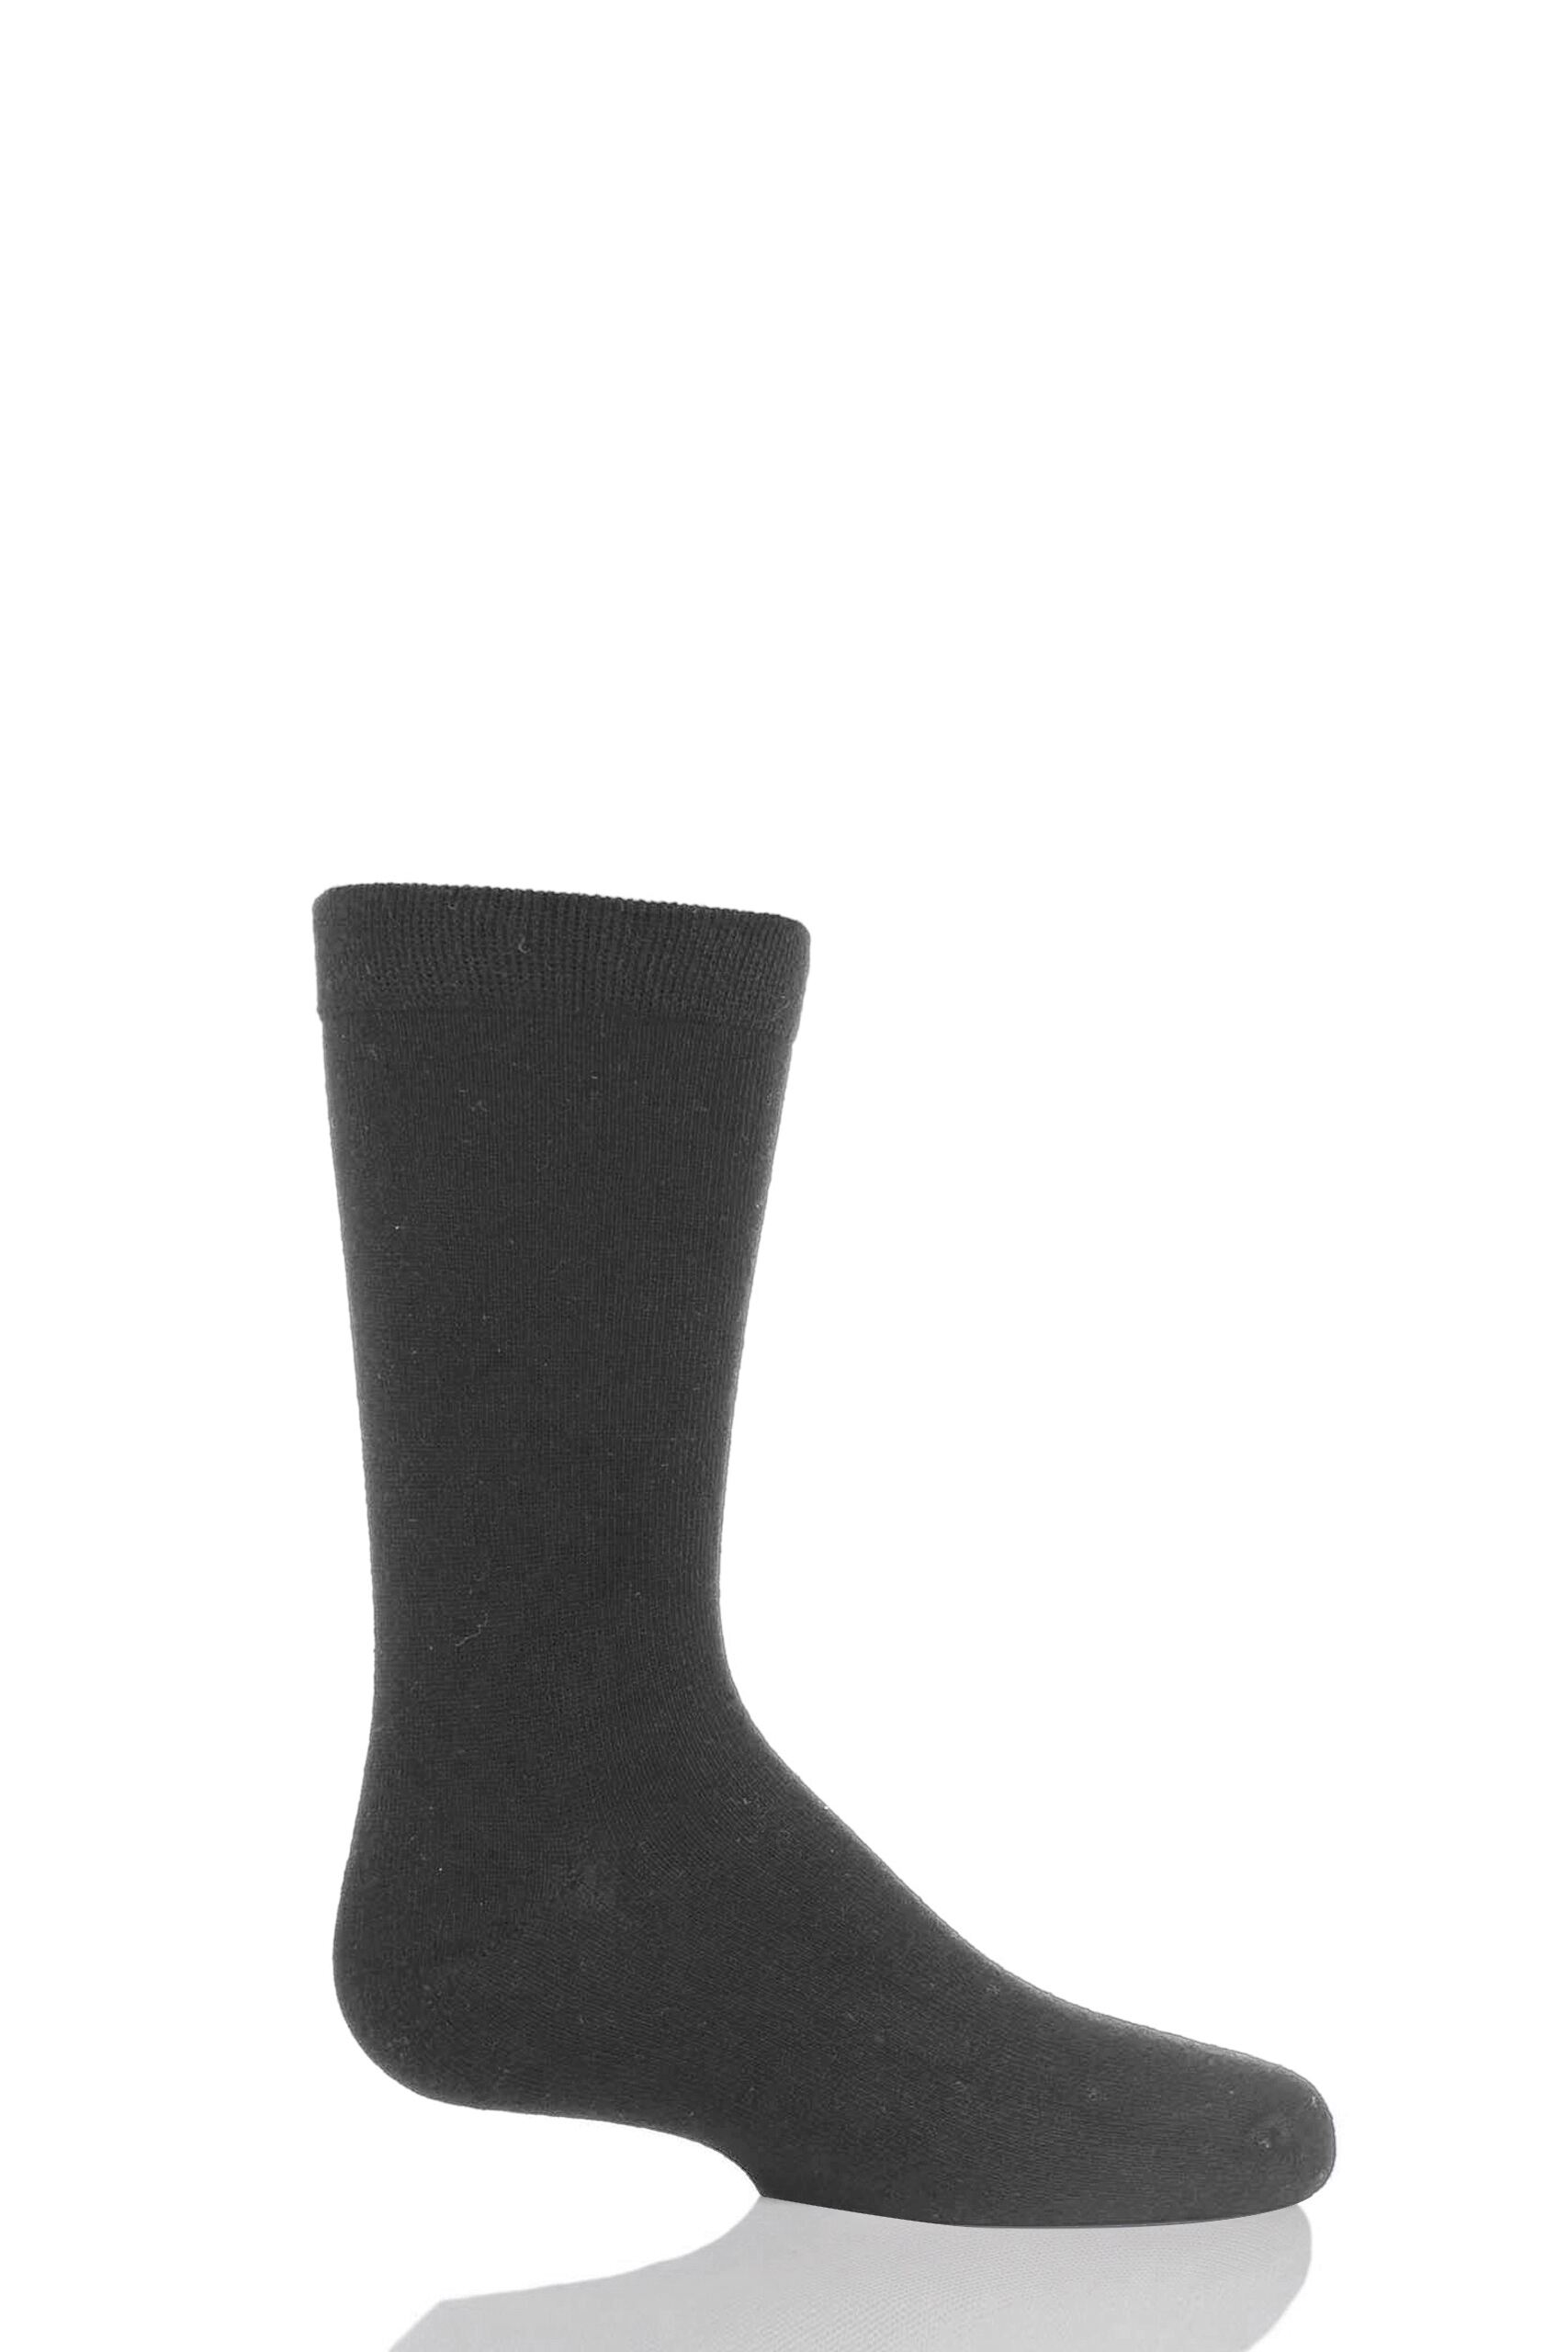 Image of 1 Pair Grey Plain Bamboo Socks with Comfort Cuff and Smooth Toe Seams Kids Unisex 4-5.5 Kids (13-14 Years) - SOCKSHOP